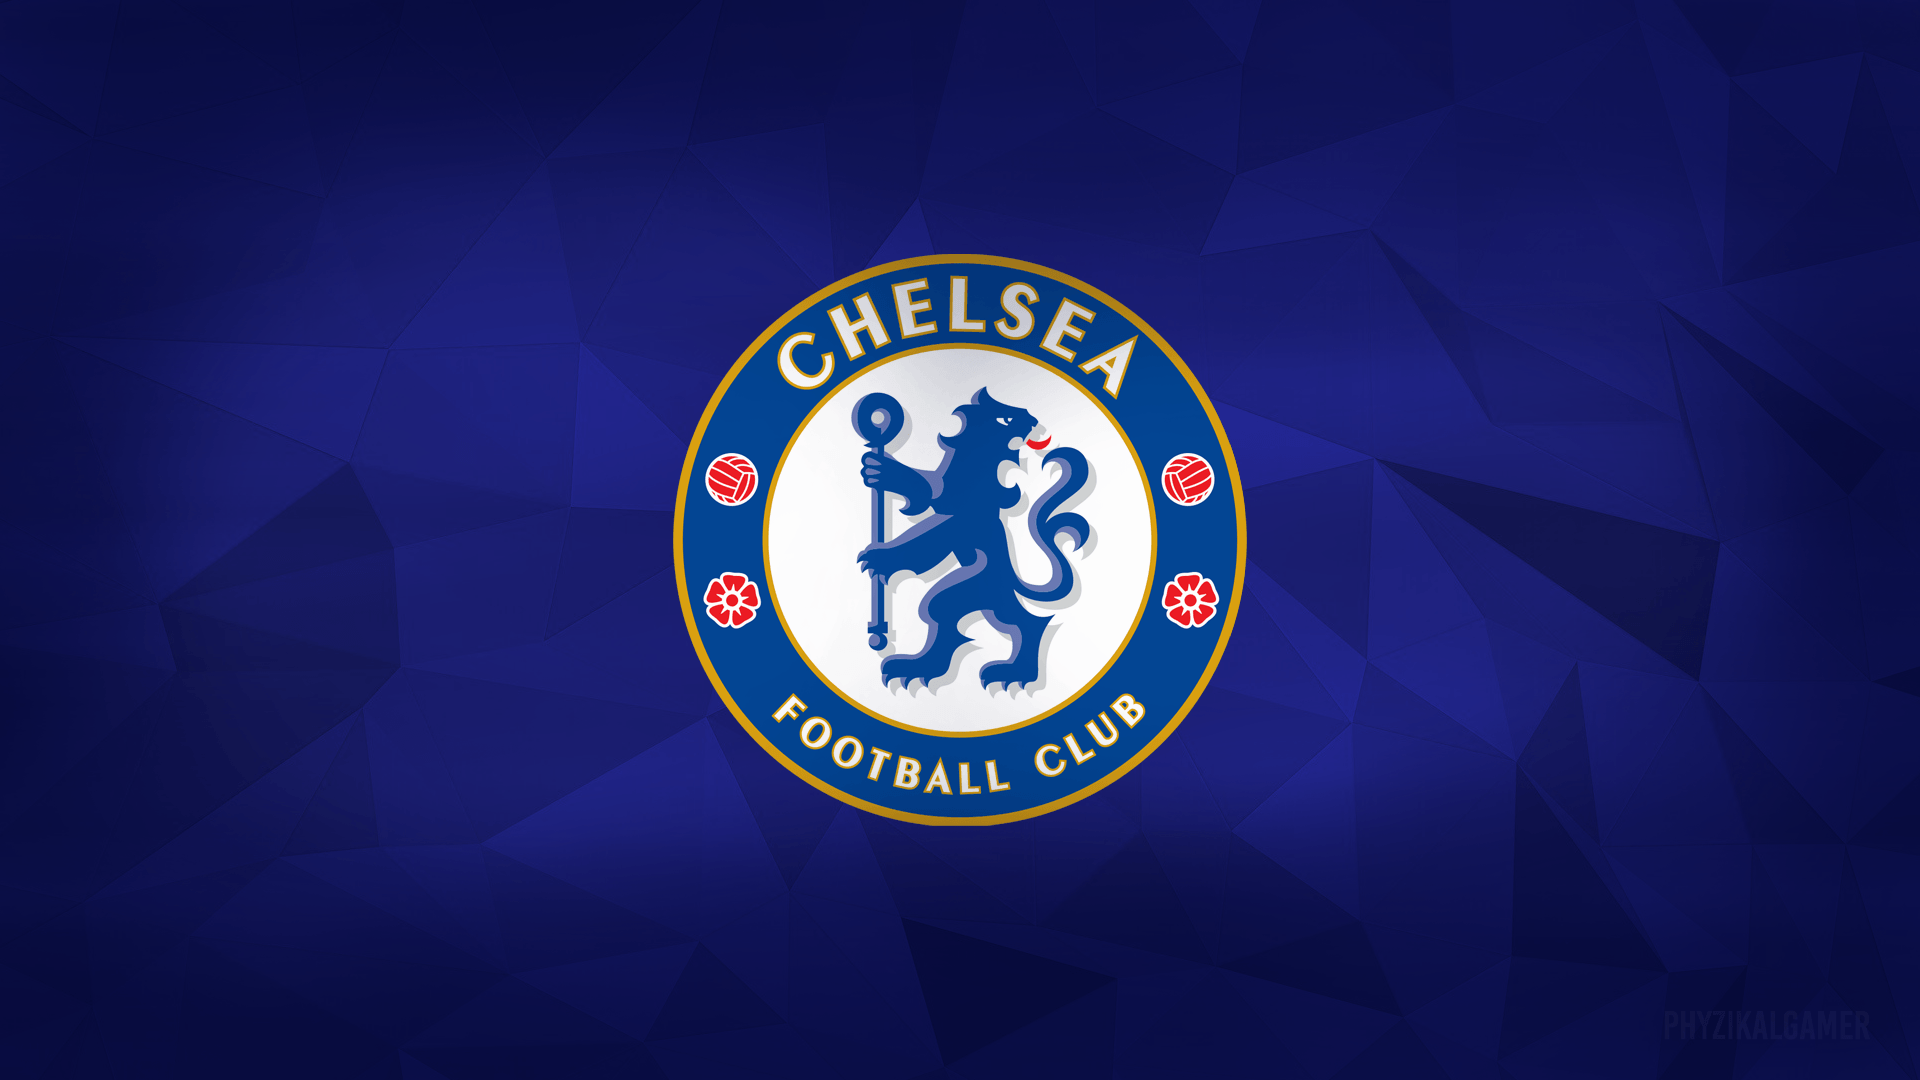 Chelsea Desktop Wallpapers - Top Free Chelsea Desktop Backgrounds - WallpaperAccess